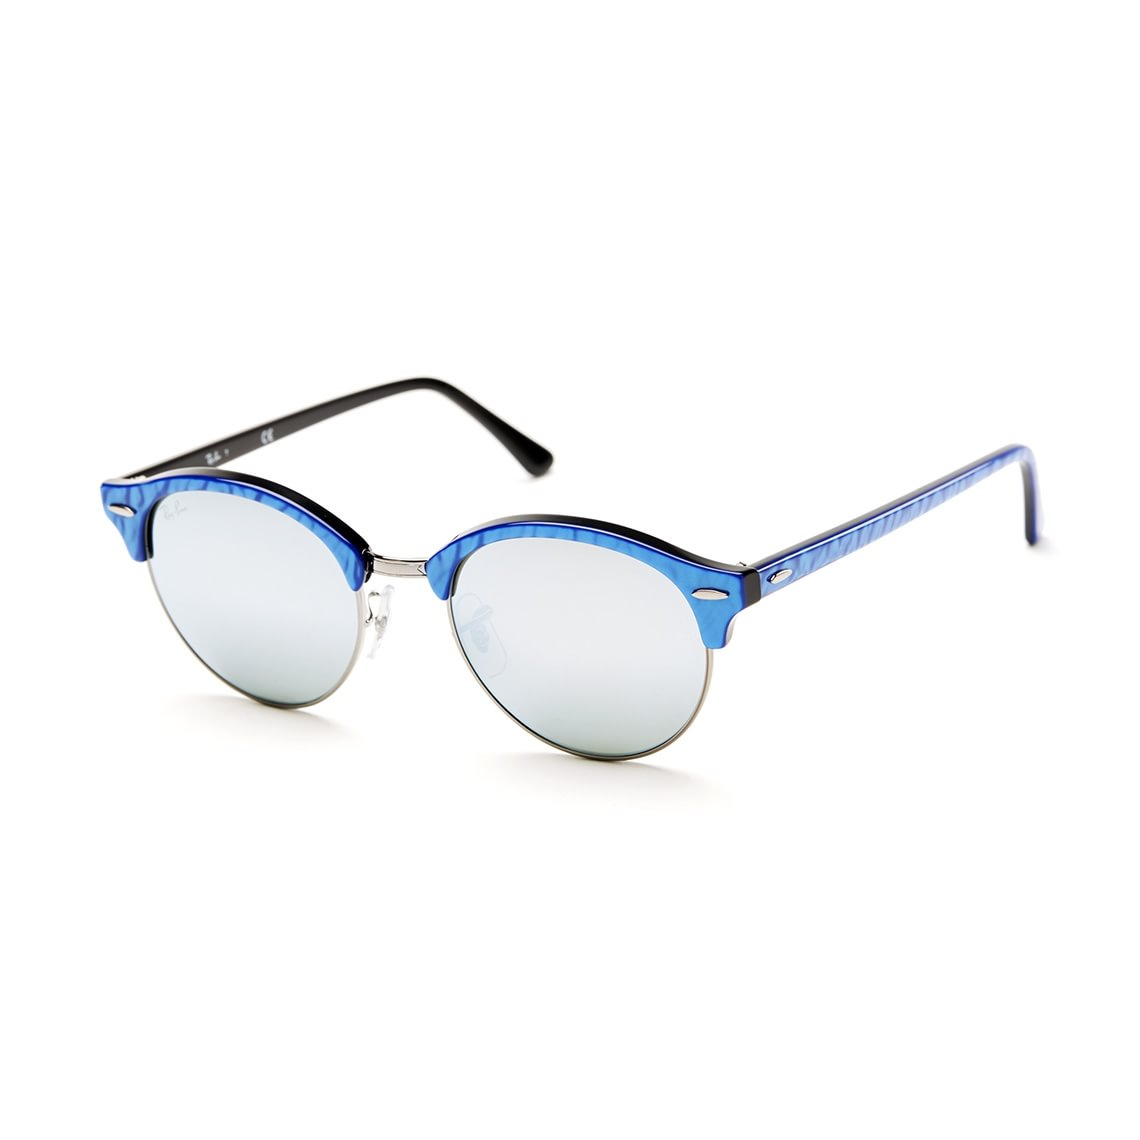 Ray-Ban Clubround RB4246 984/30 51